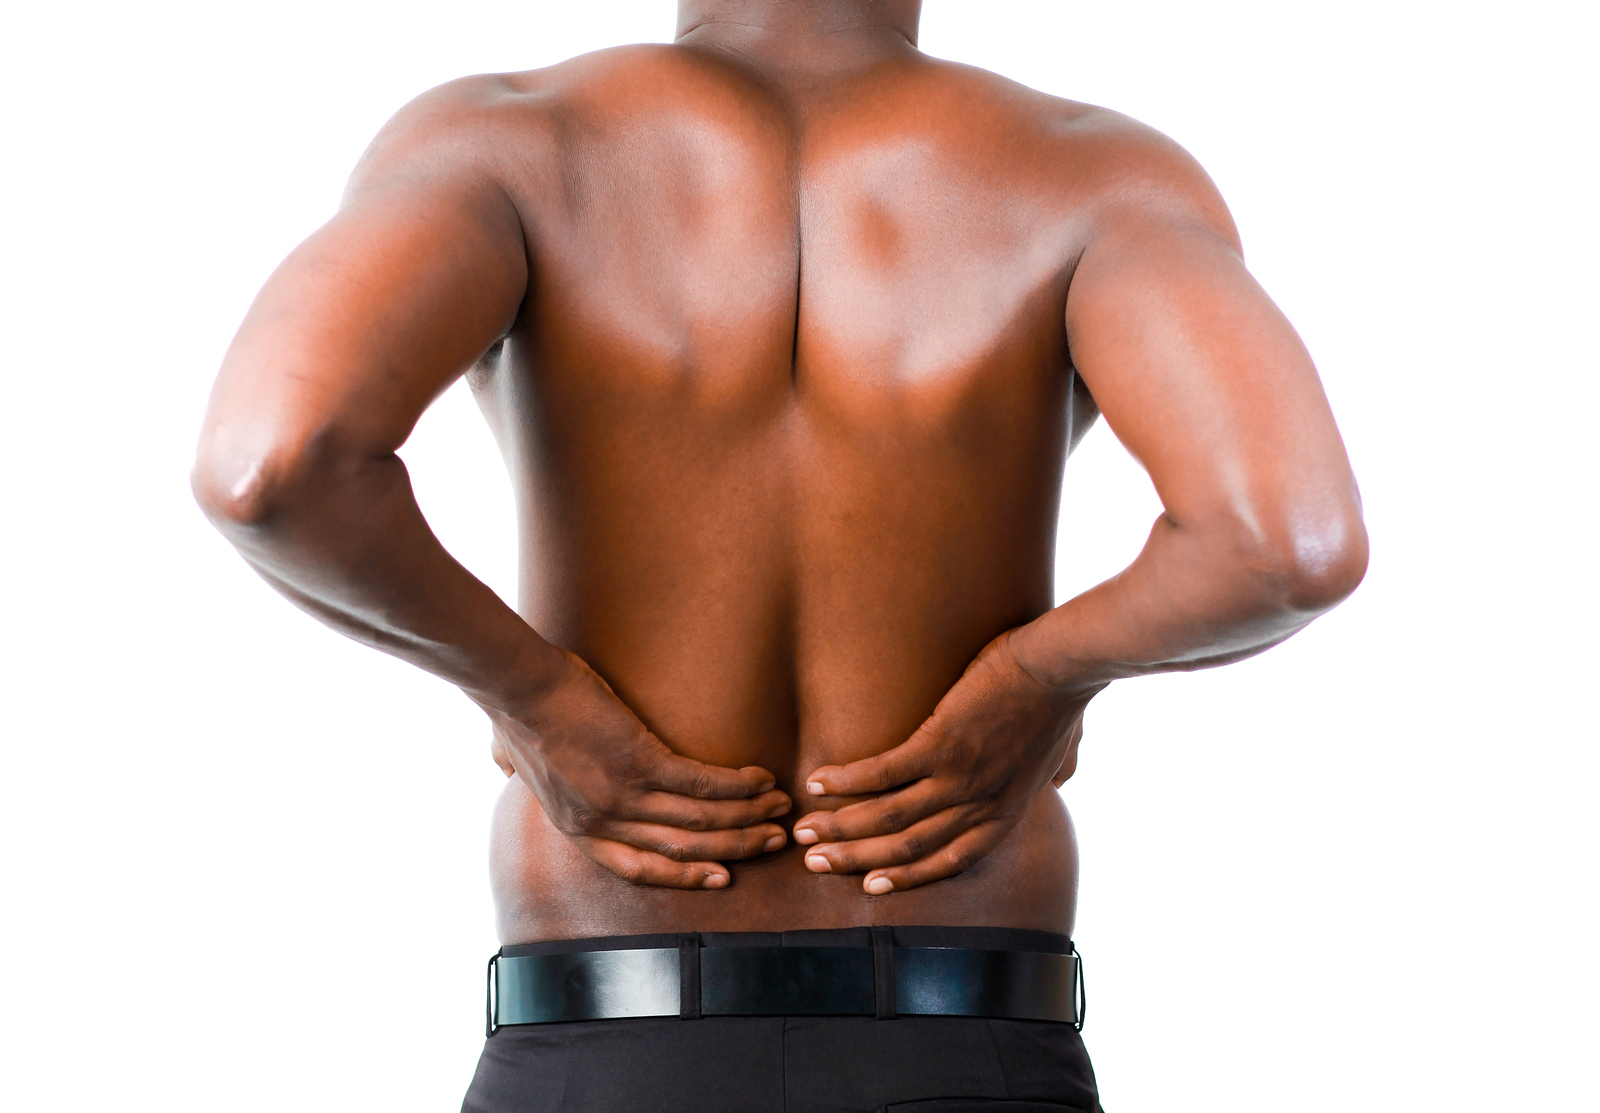 Lower back pain in jacksonville, fl treated by chiropractor at integrated healthcare solutions